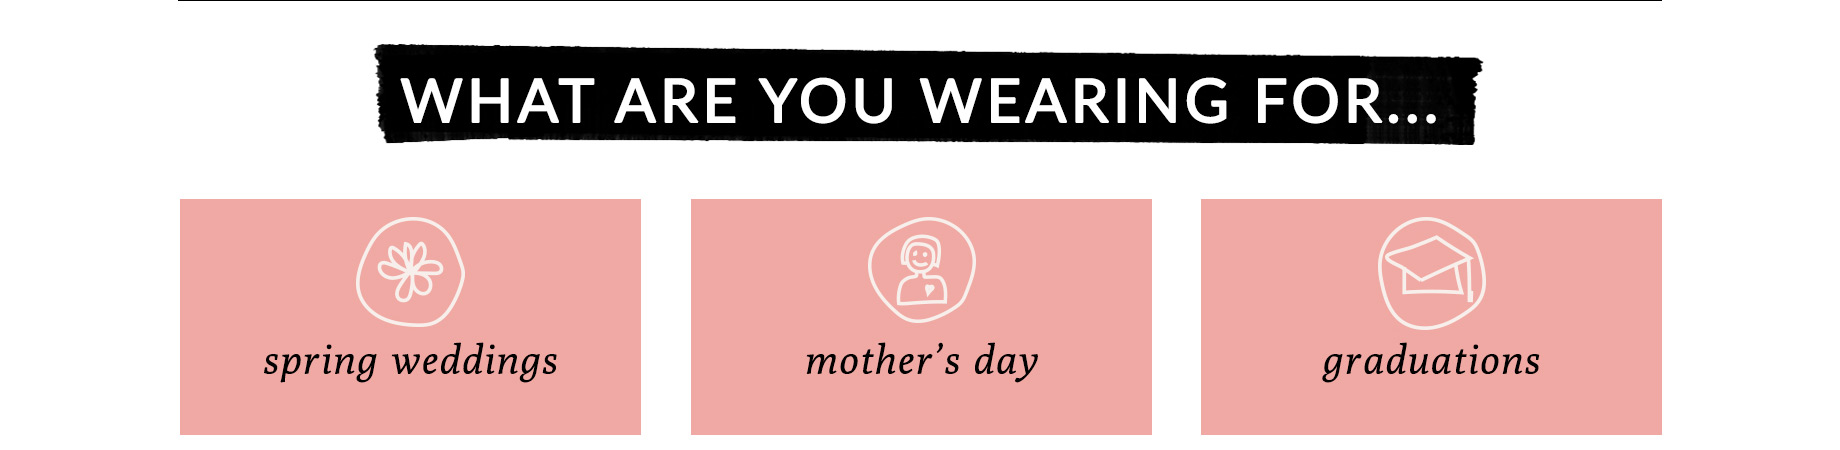 What are you wearing for...